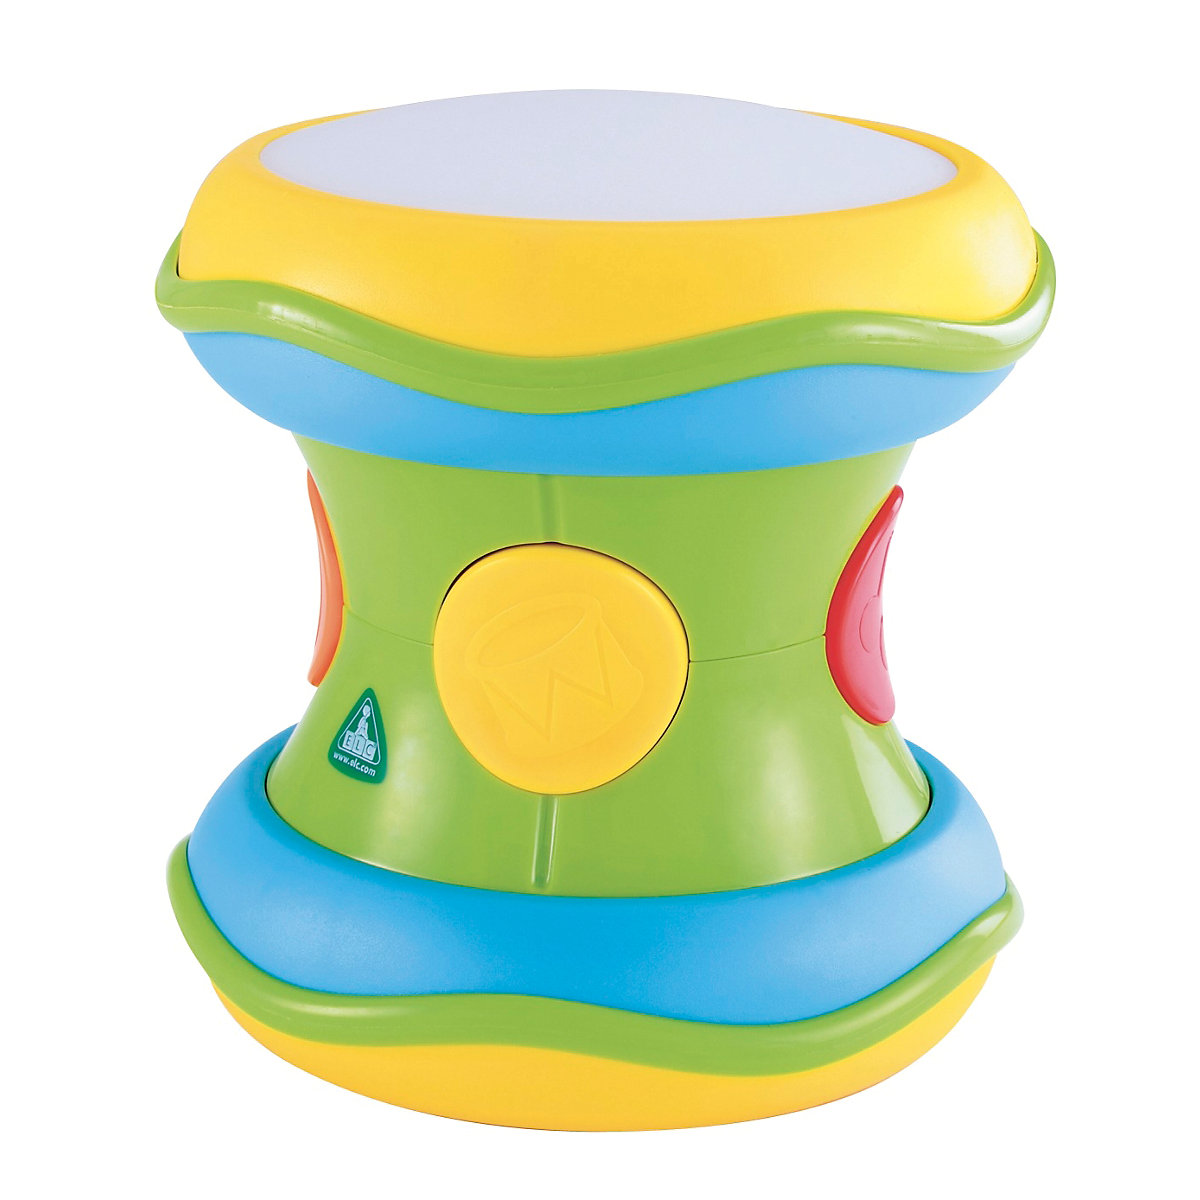 New ELC Boys and Girls Light and Sound Drum Toy From 9 months - Toddler Gifts